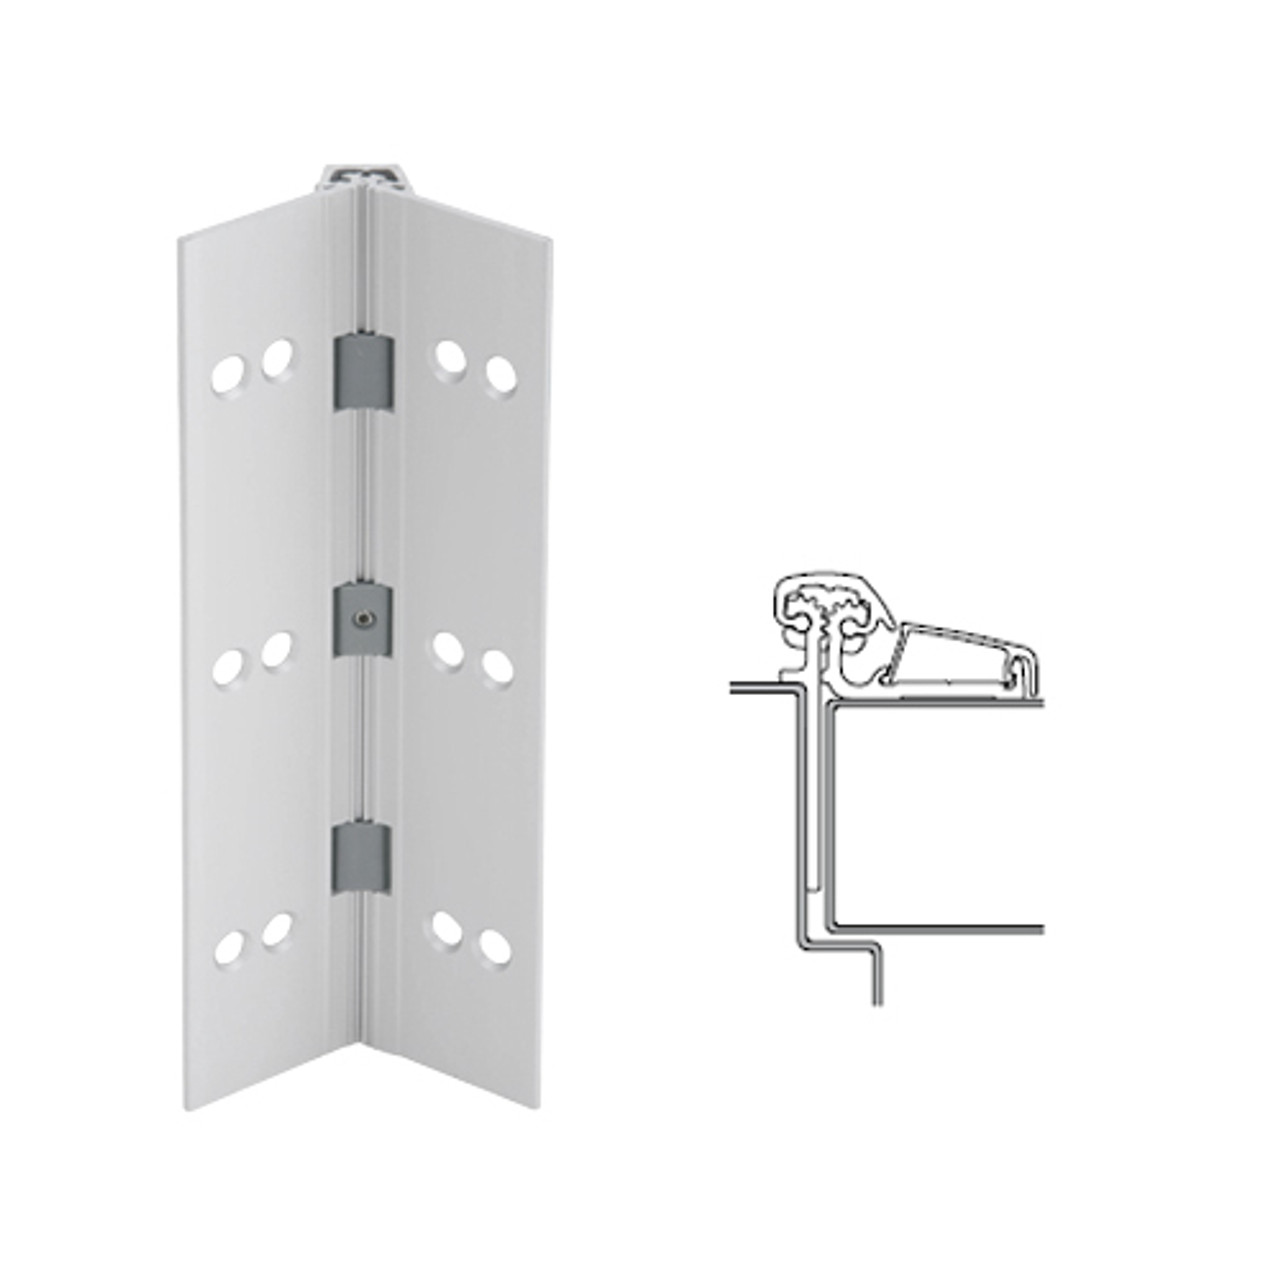 053XY-US28-85-TFWD IVES Adjustable Half Surface Continuous Geared Hinges with Thread Forming Screws in Satin Aluminum